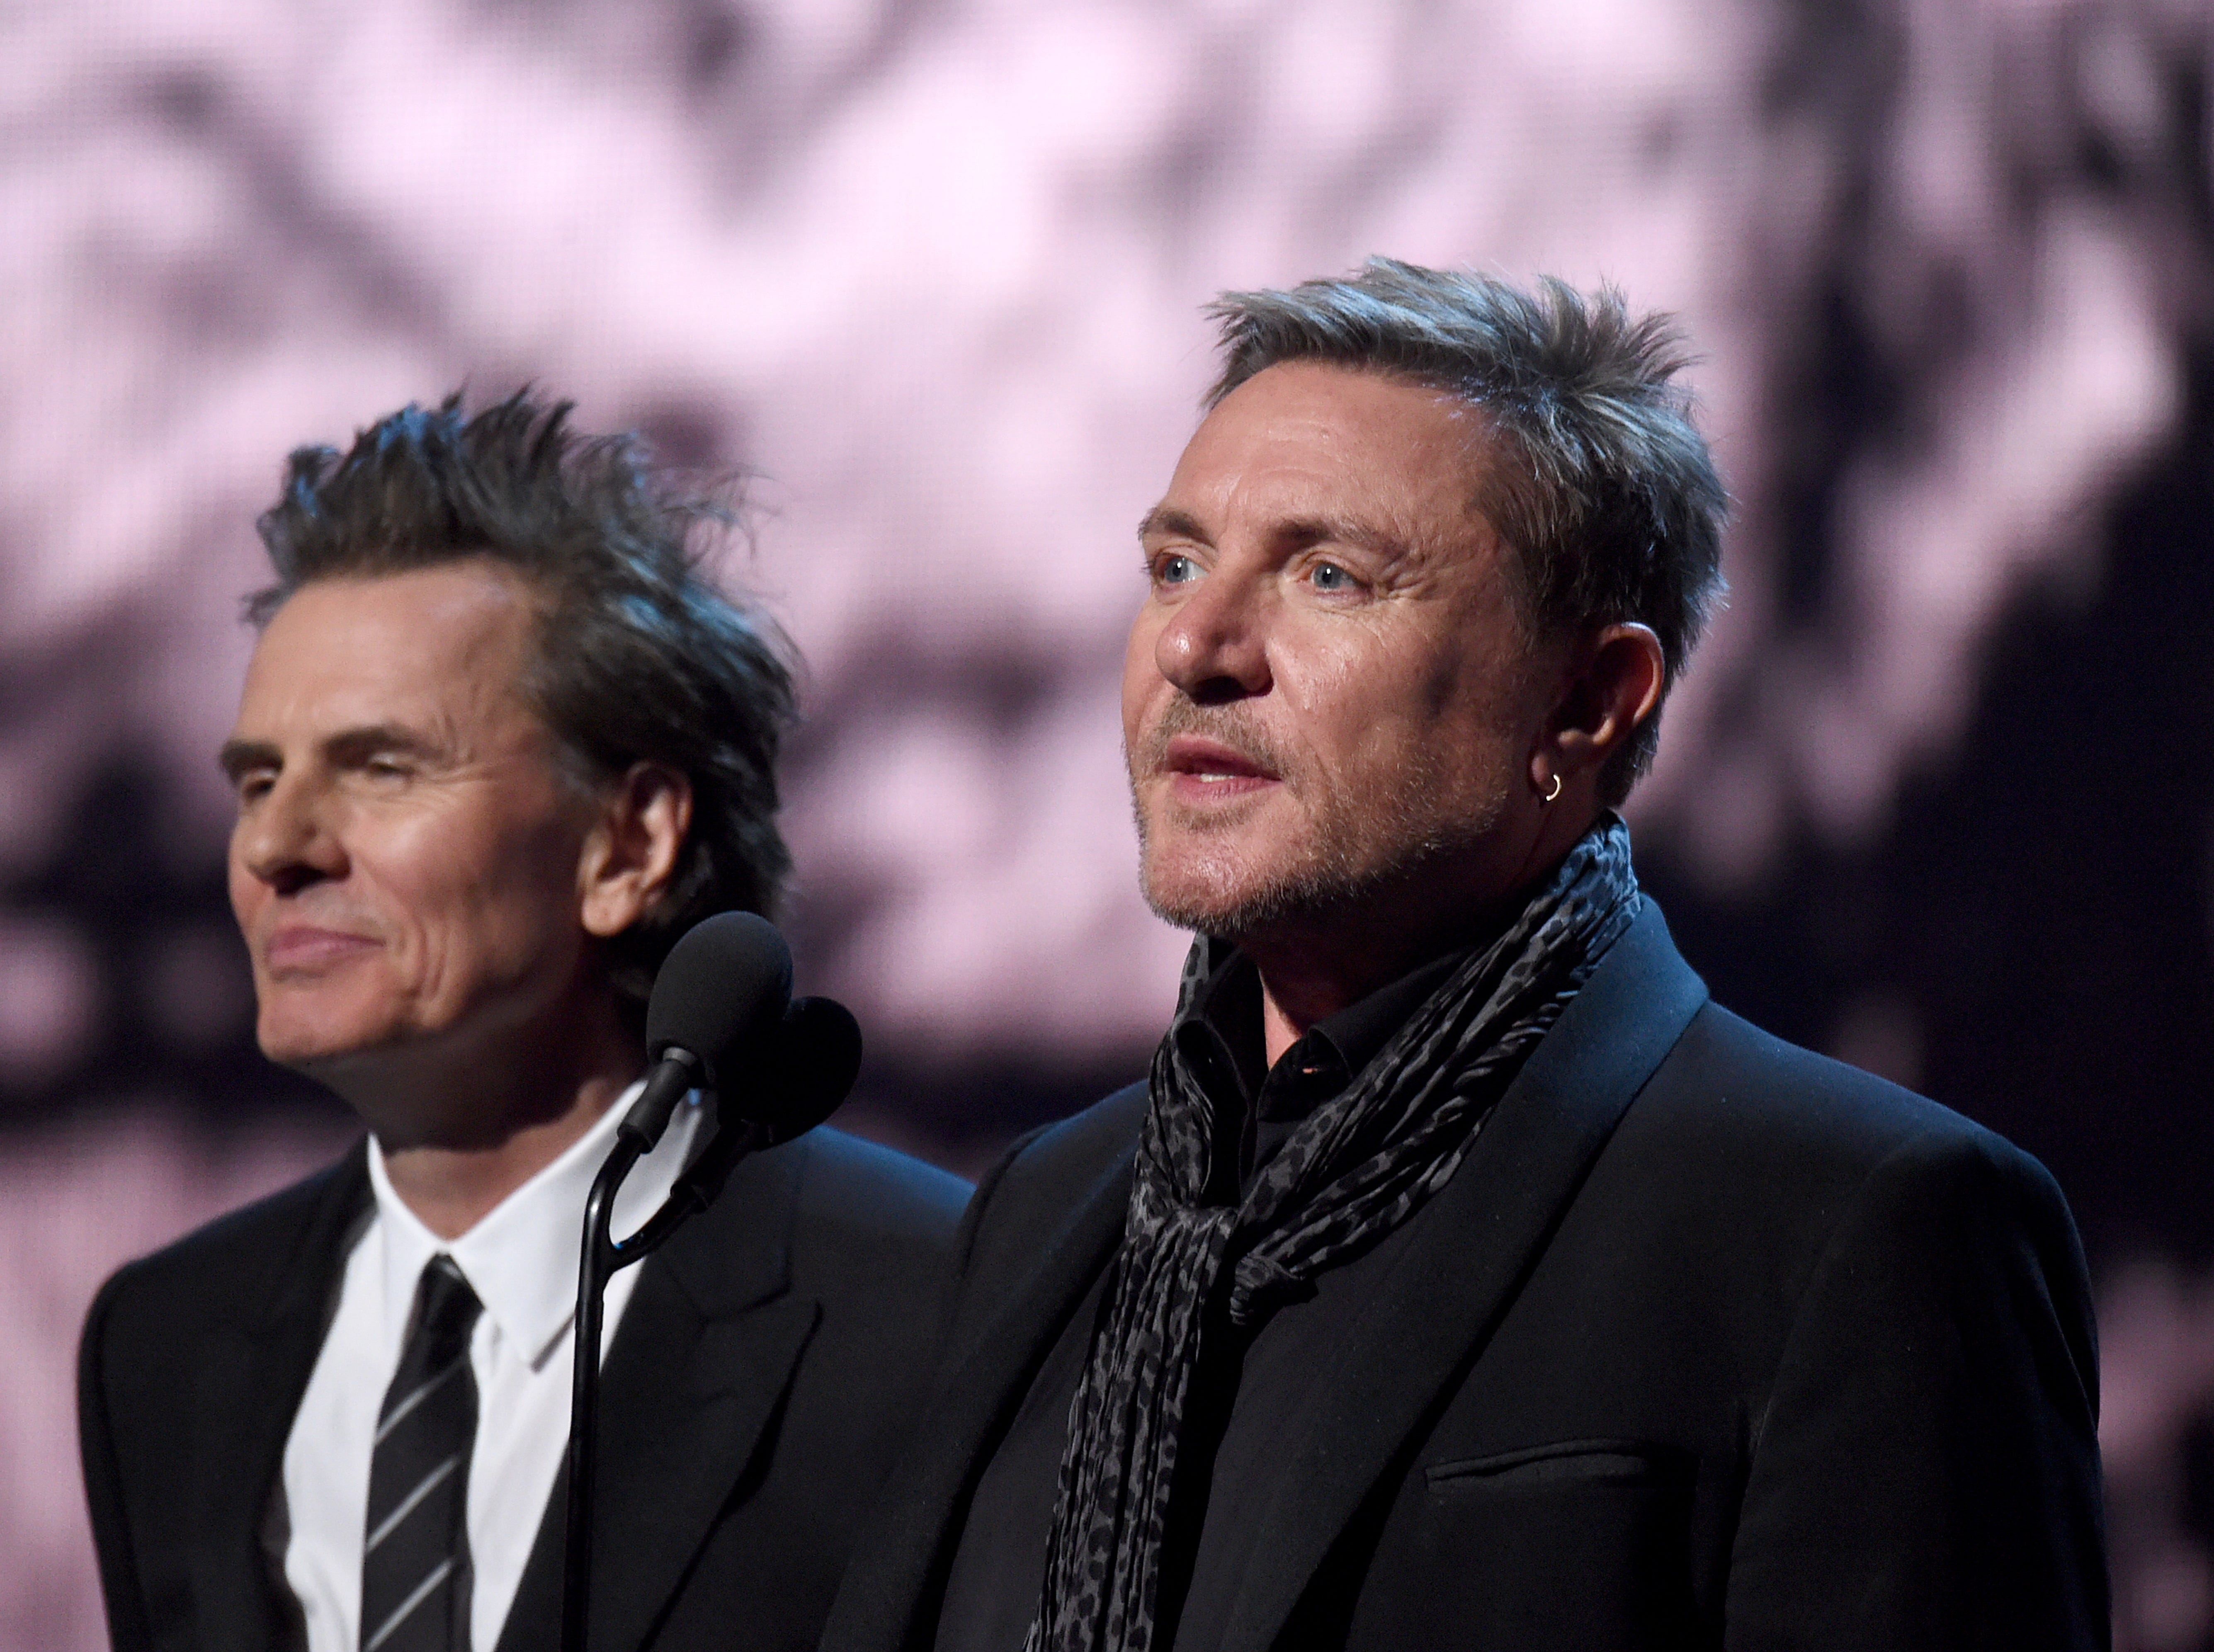 Duran Duran's John Taylor, left, and Simon Le Bon introduce Roxy Music.